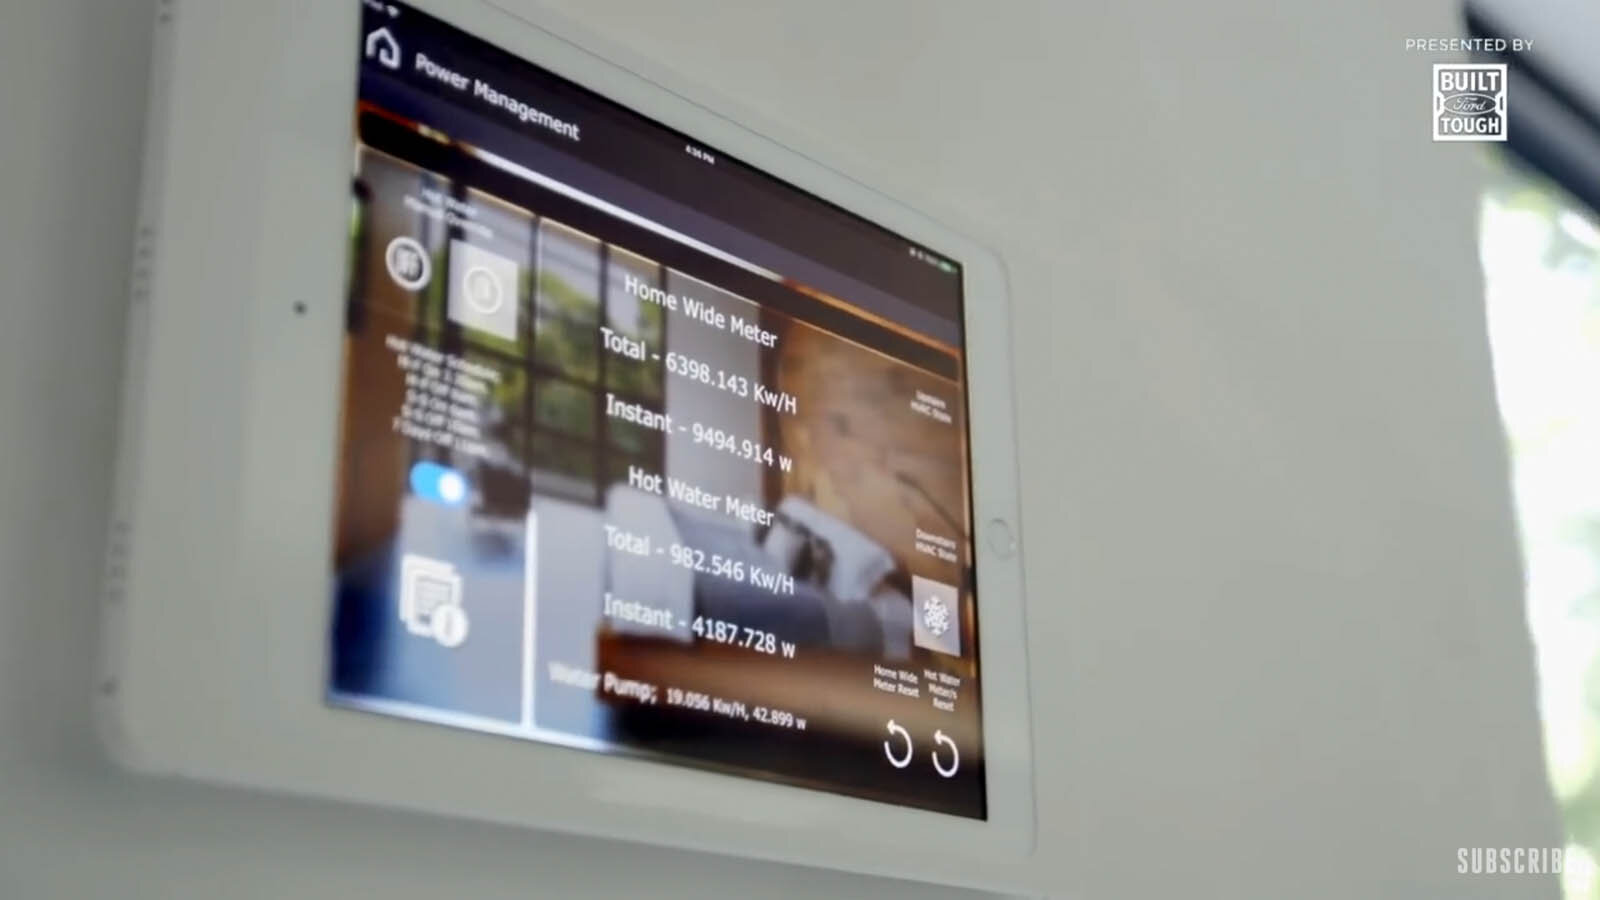 Home Automation App Control in Every Room